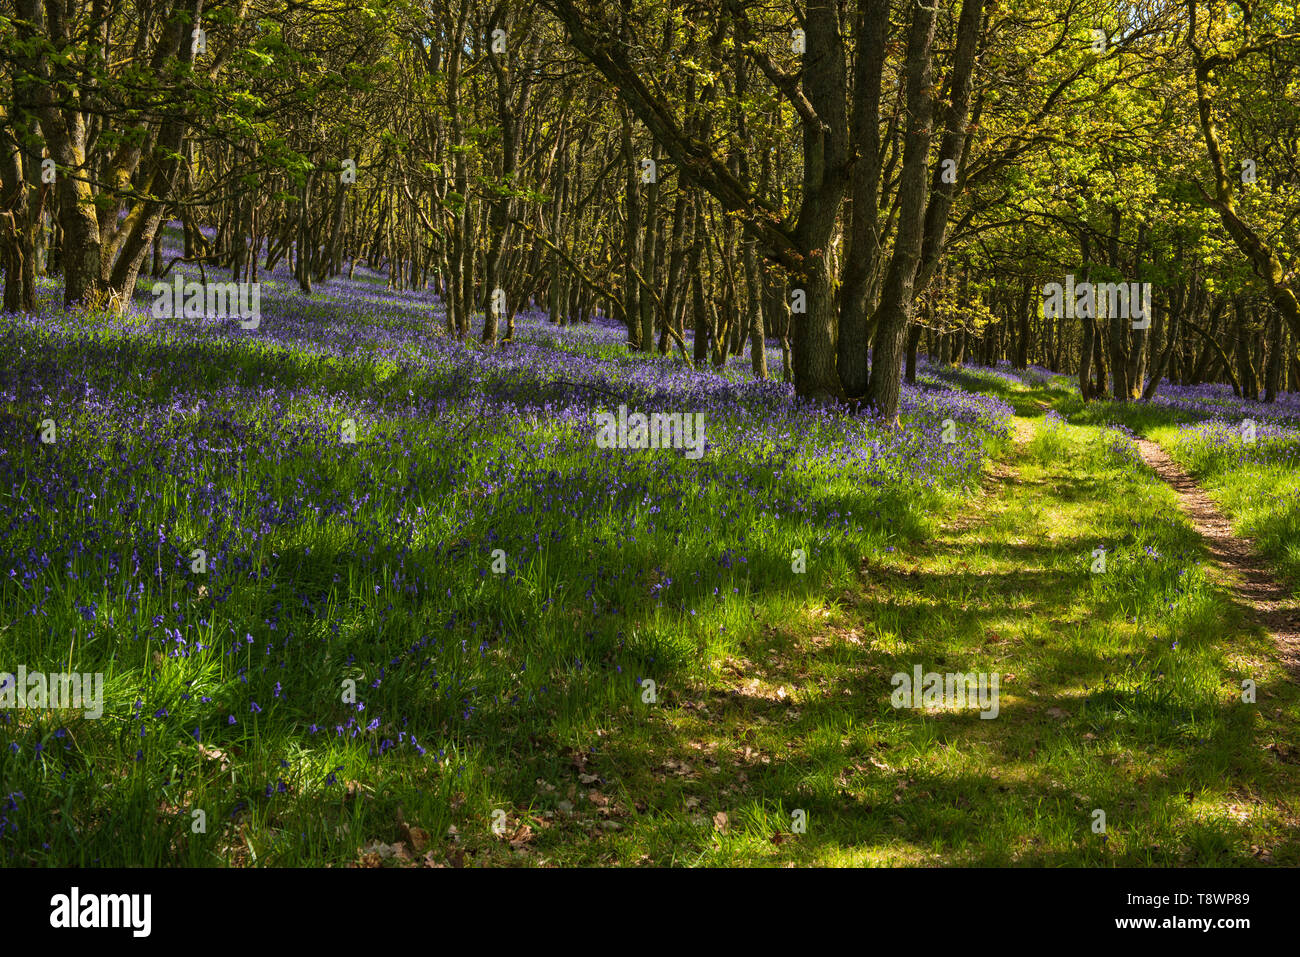 Ruthven Bluebell wood on the bank of the River Isla, Angus, Scotland. Stock Photo